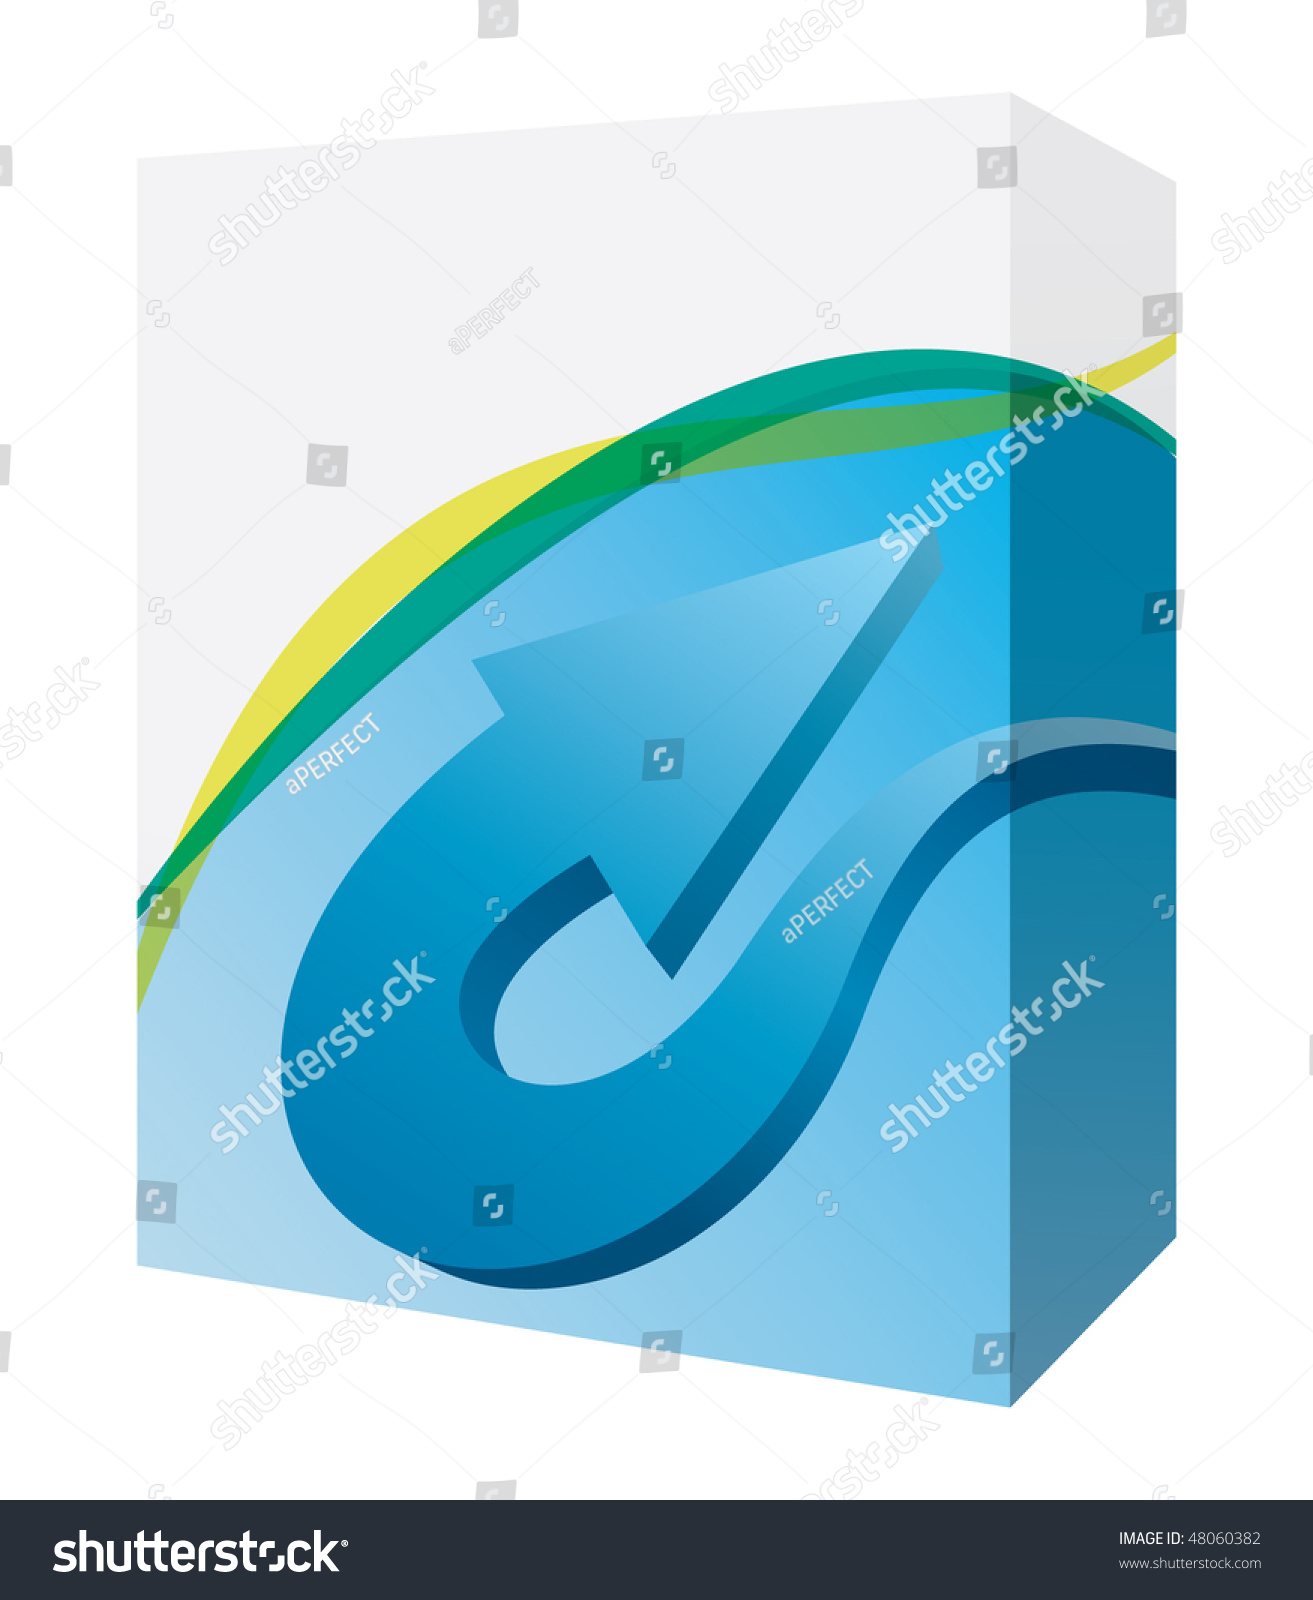 Software box with arrow stock vector illustration 48060382 Vector image software